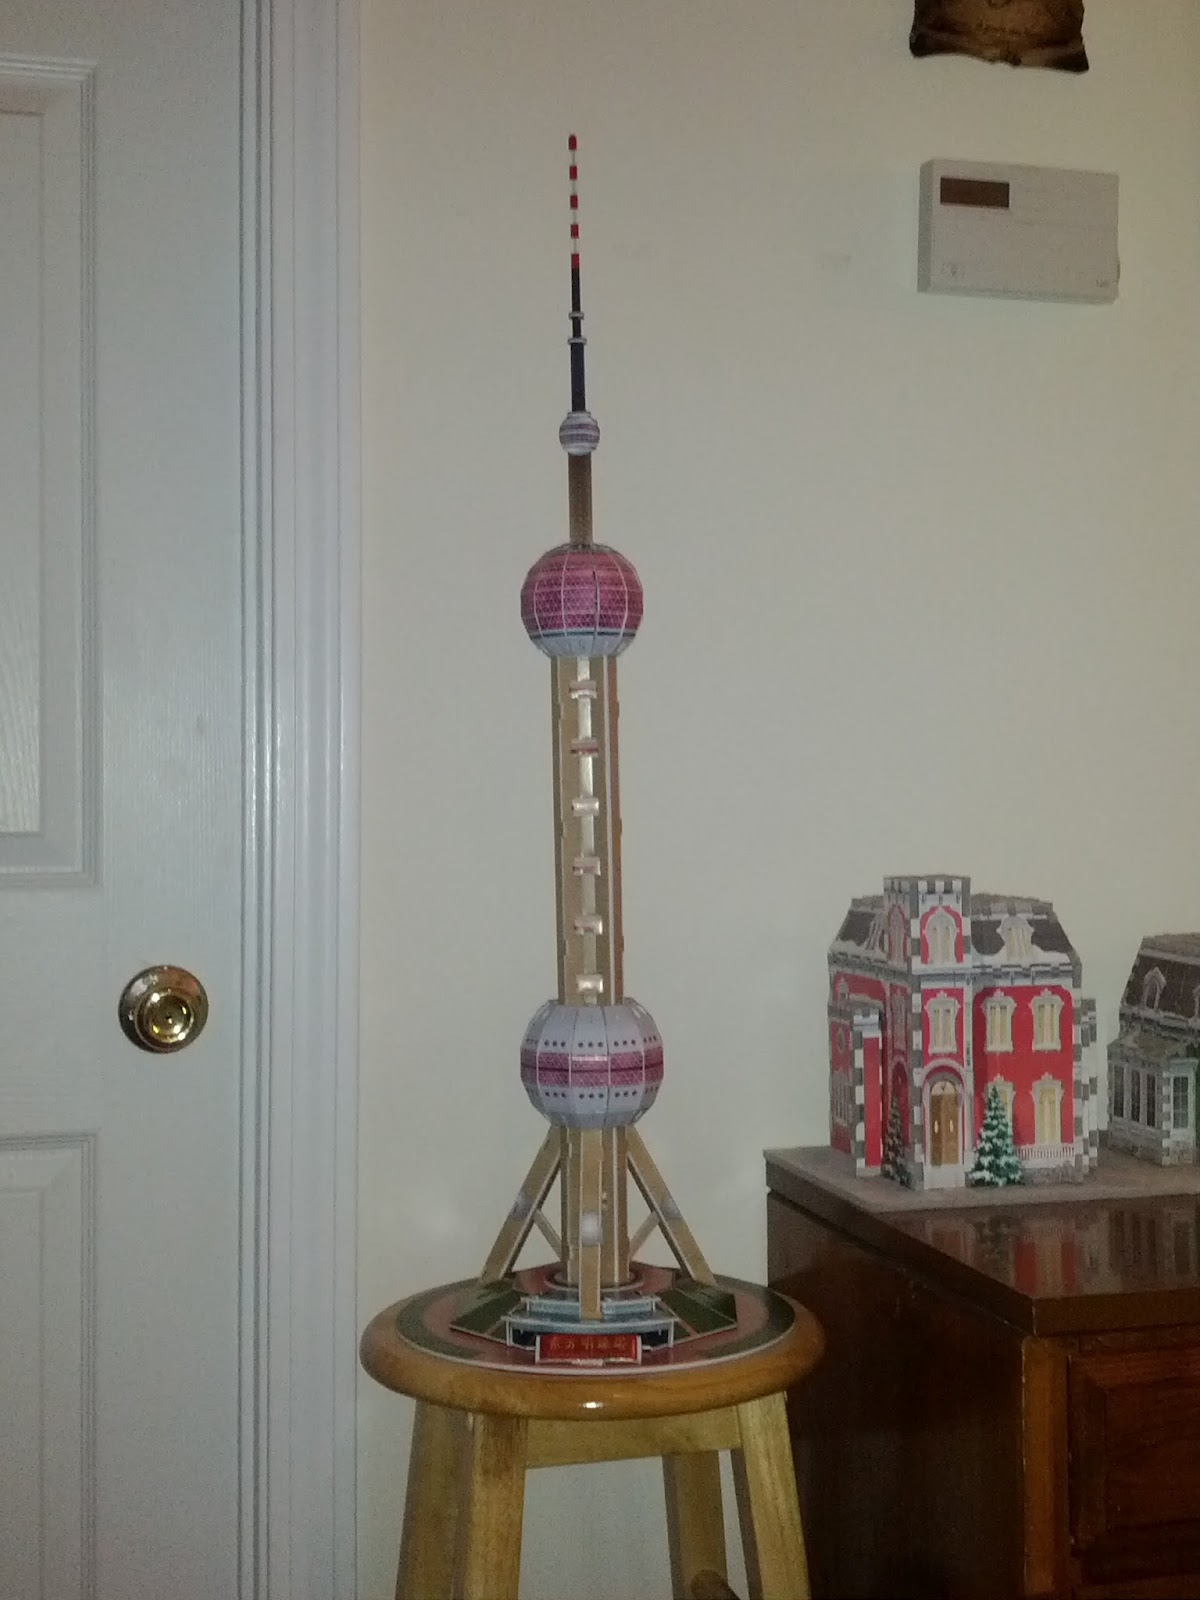 30 And Counting 3d Puzzle Pearl Of The Orient